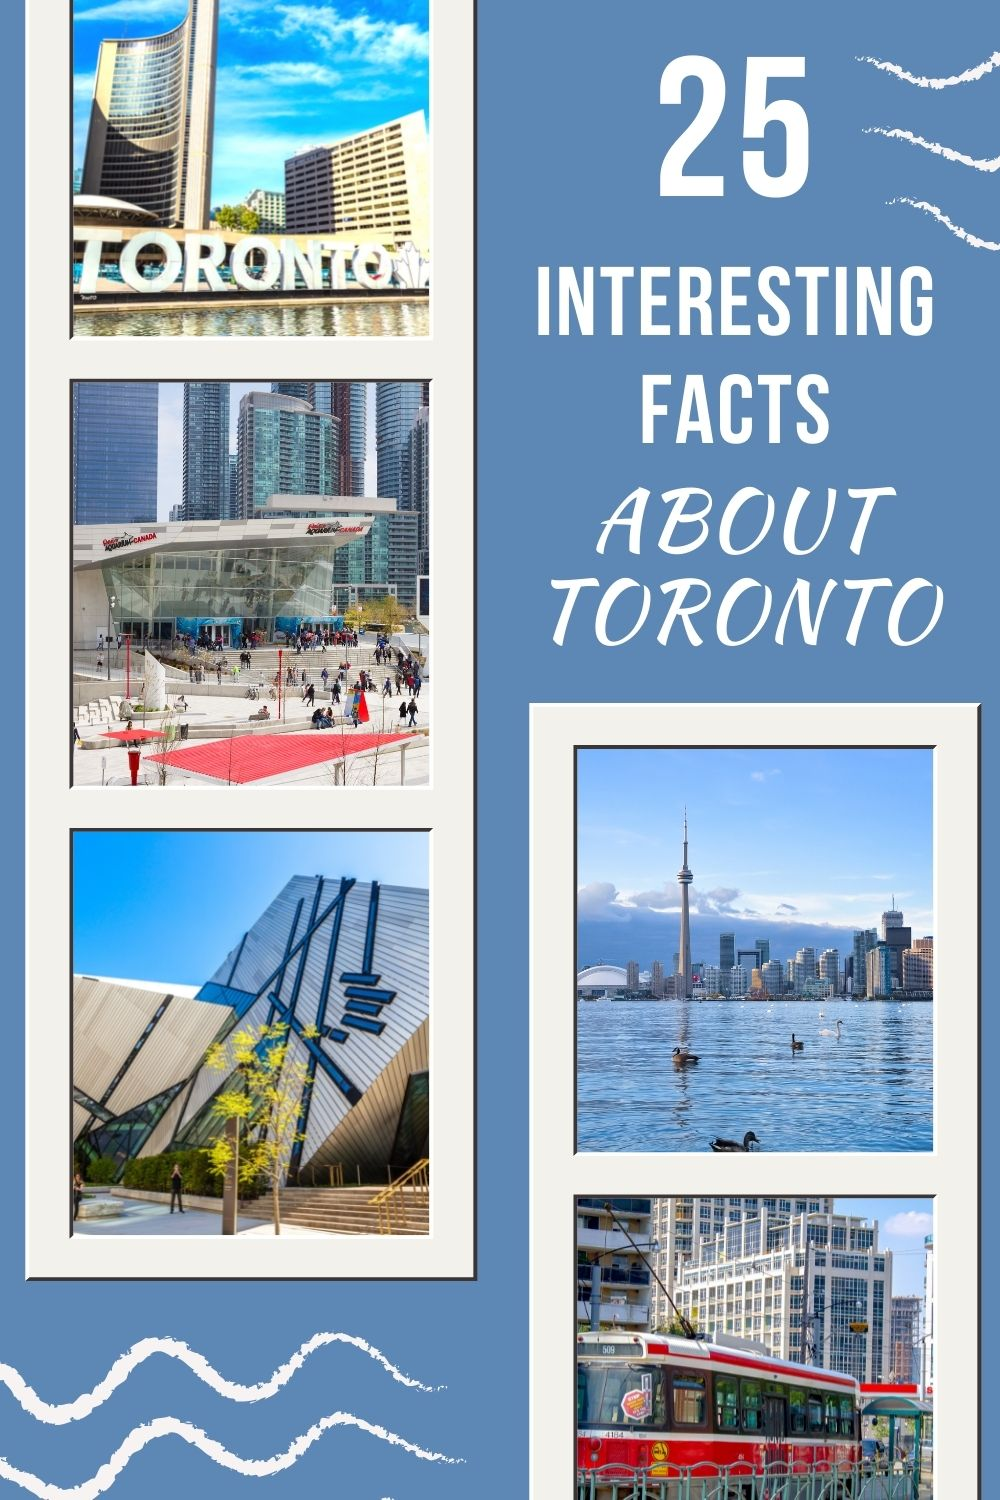 25 Interesting Facts About Toronto